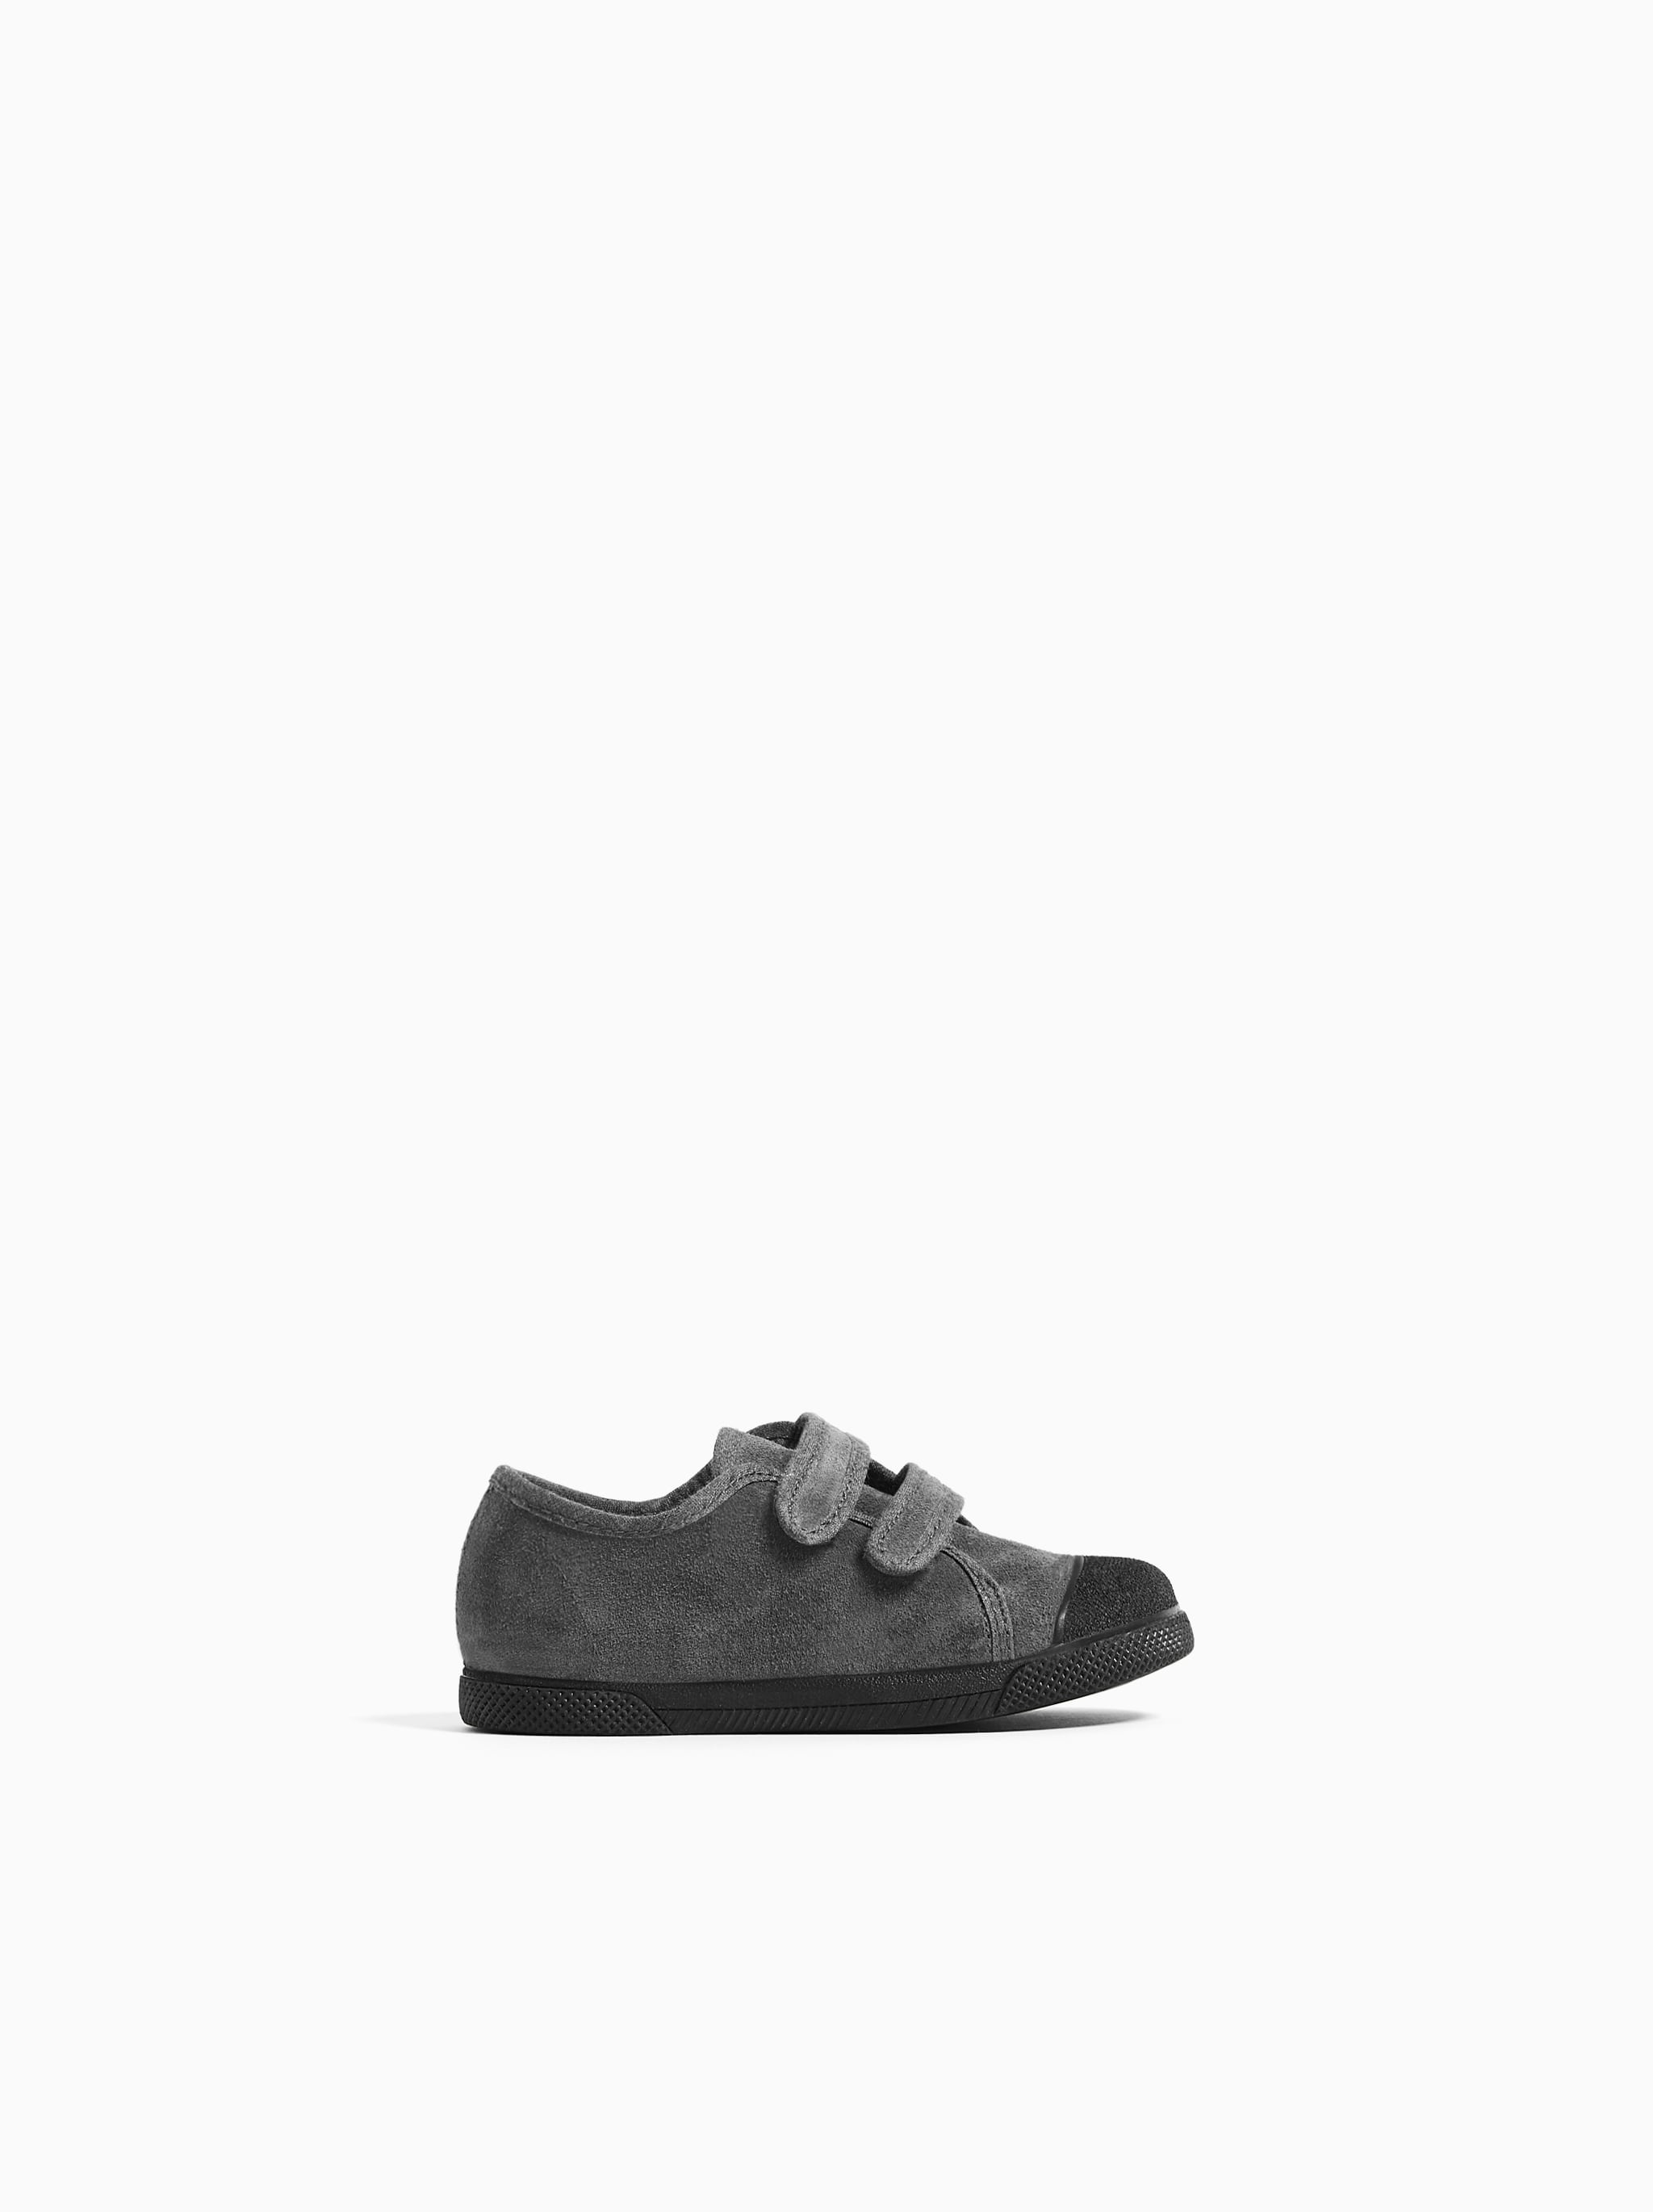 Zara LEATHER SNEAKERS WITH ADJUSTABLE STRAPS